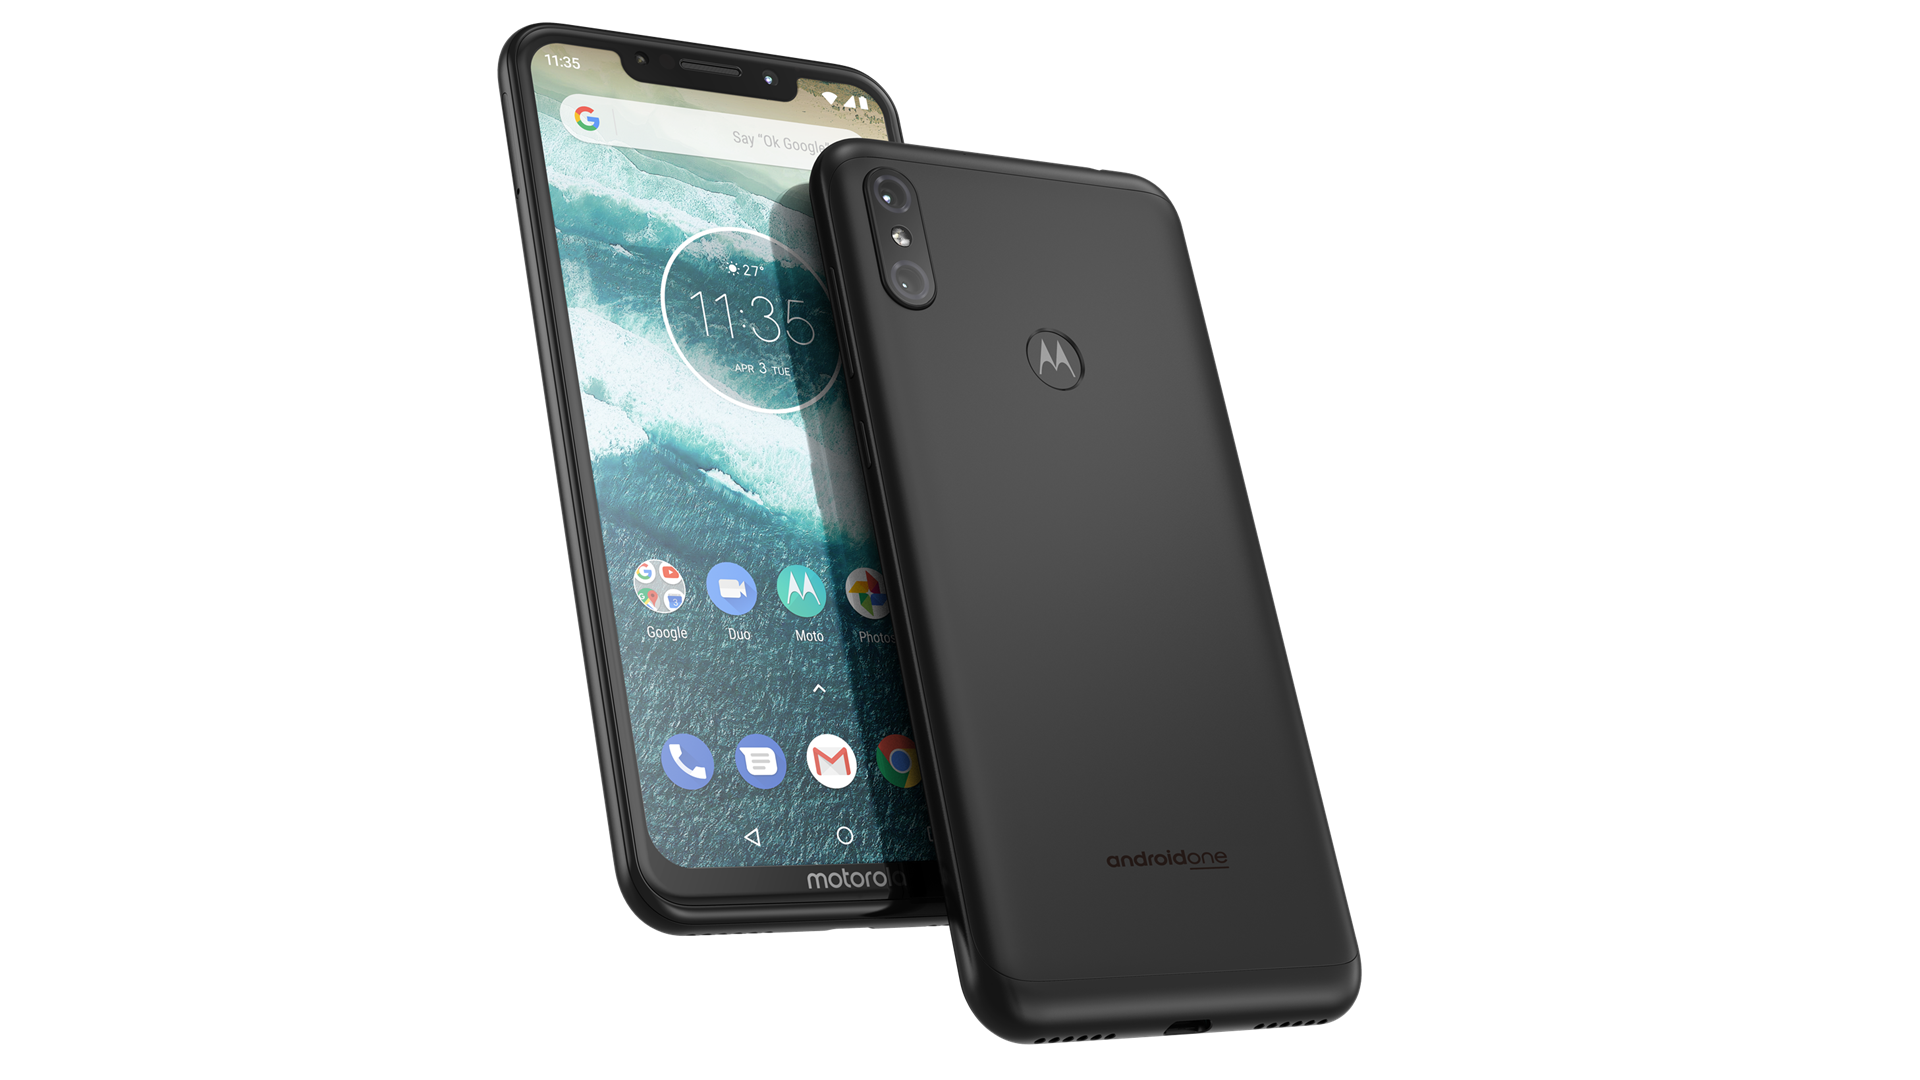 Motorola One Power: confirmed specs and features prior to official launch